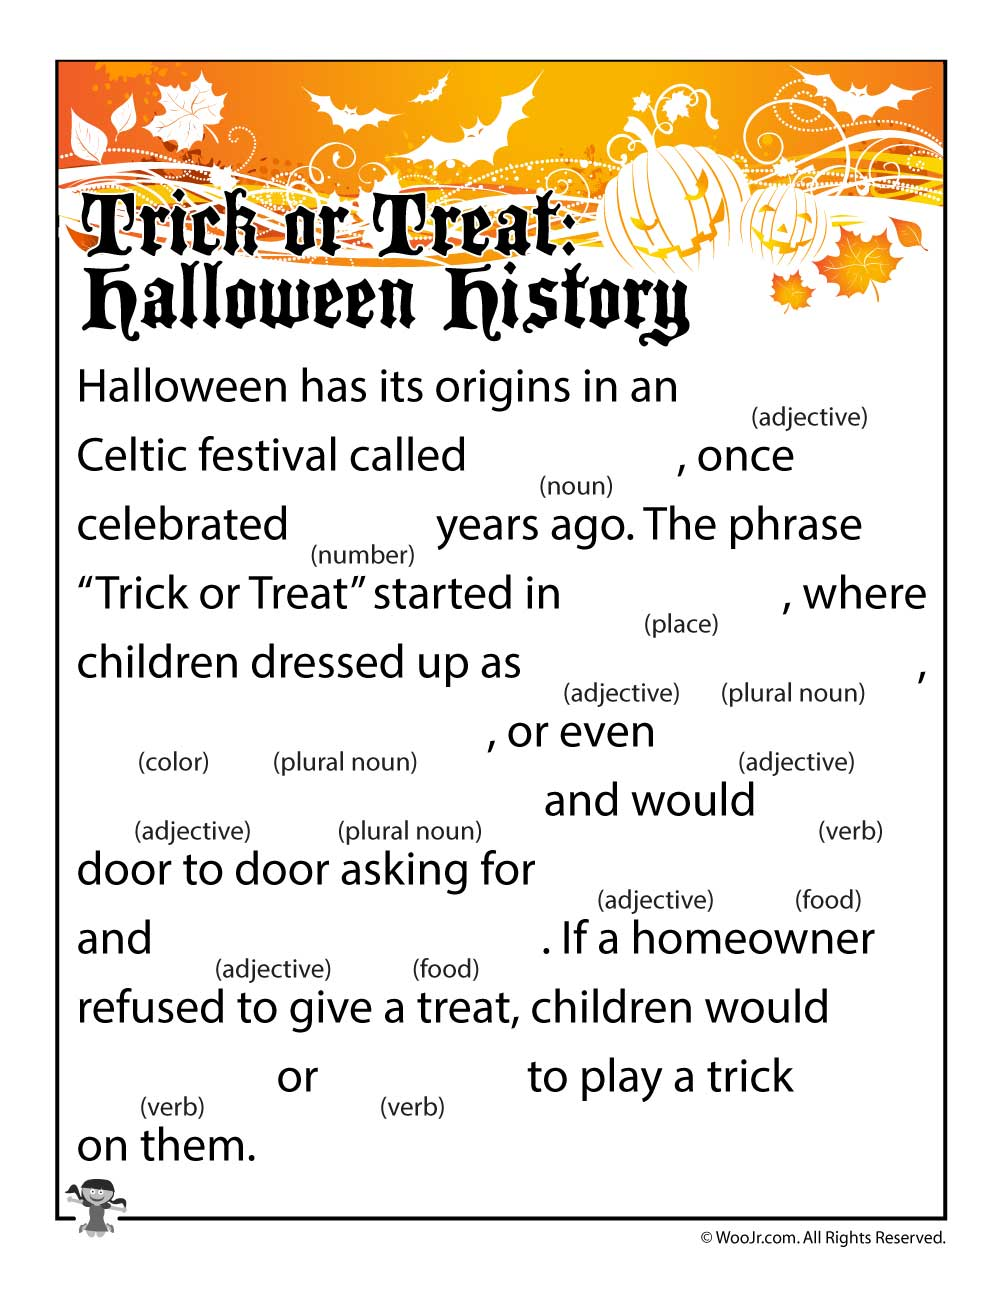 history of halloween for elementary students | cartooncreative.co